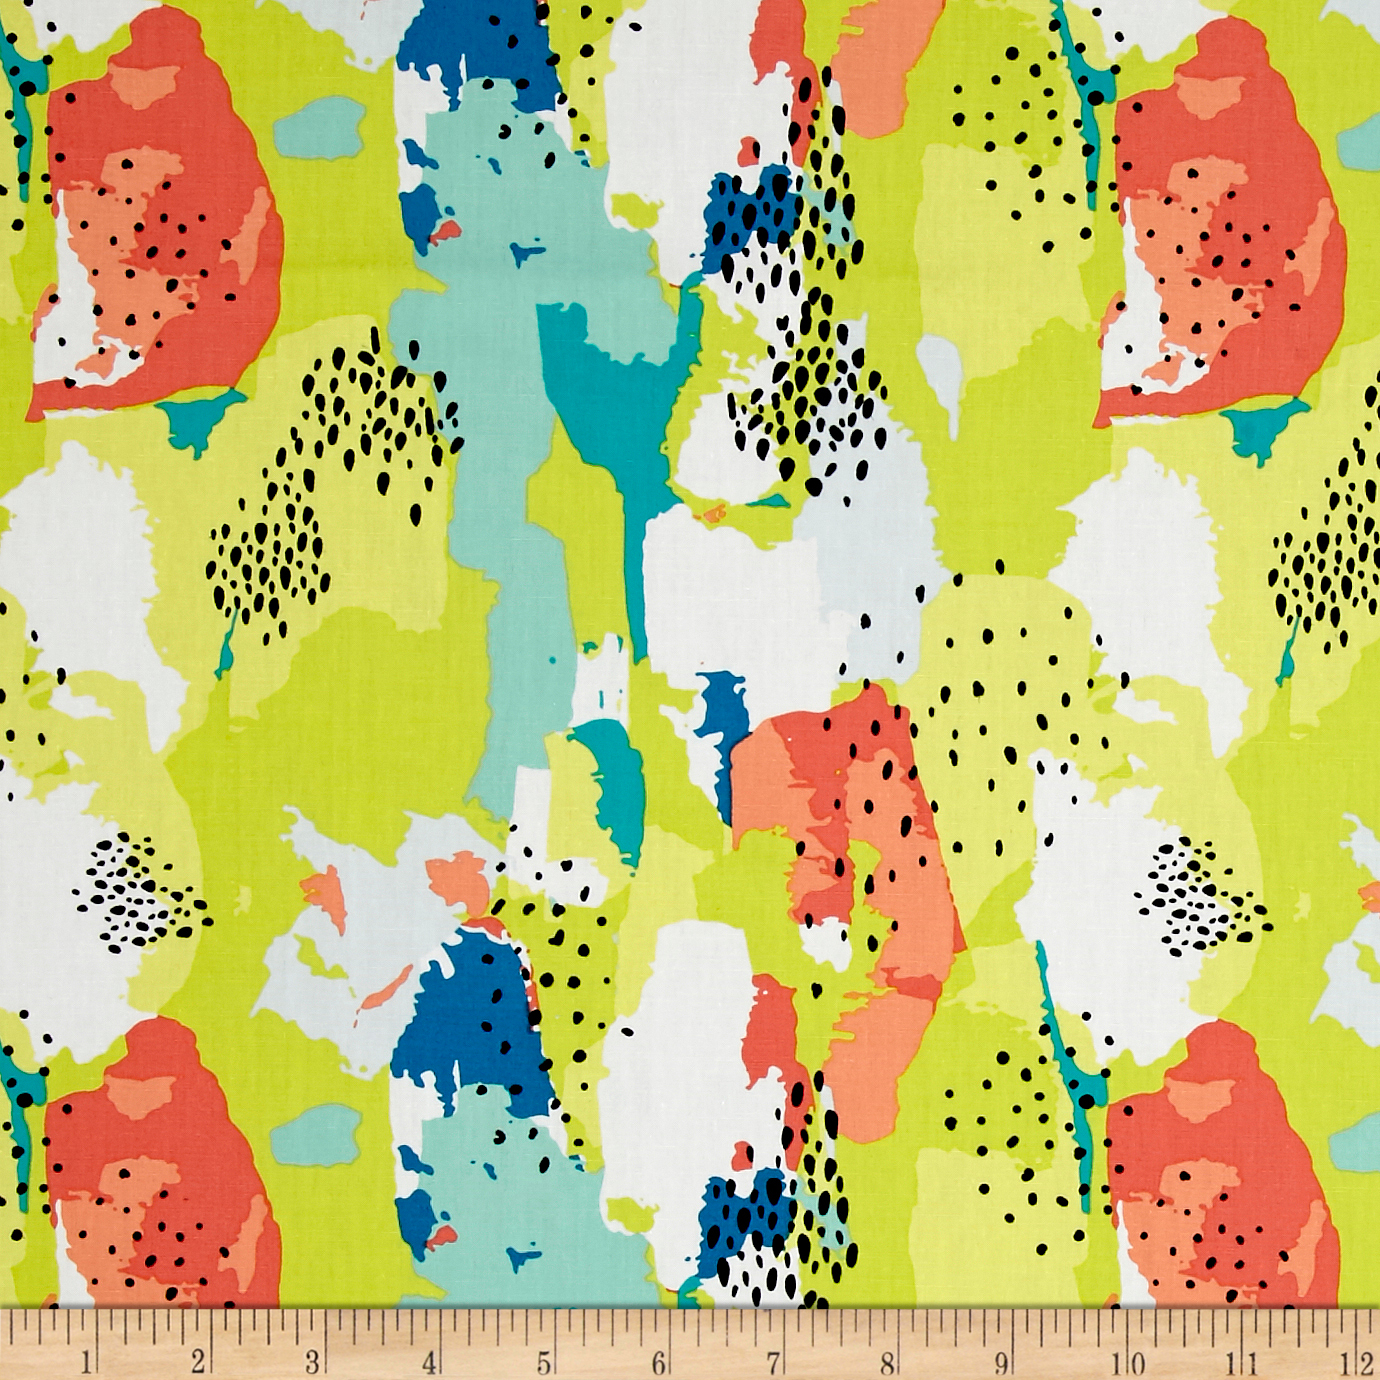 Art Gallery Here Comes the Fun Improv Strokes Citrus Fabric by Art Gallery in USA